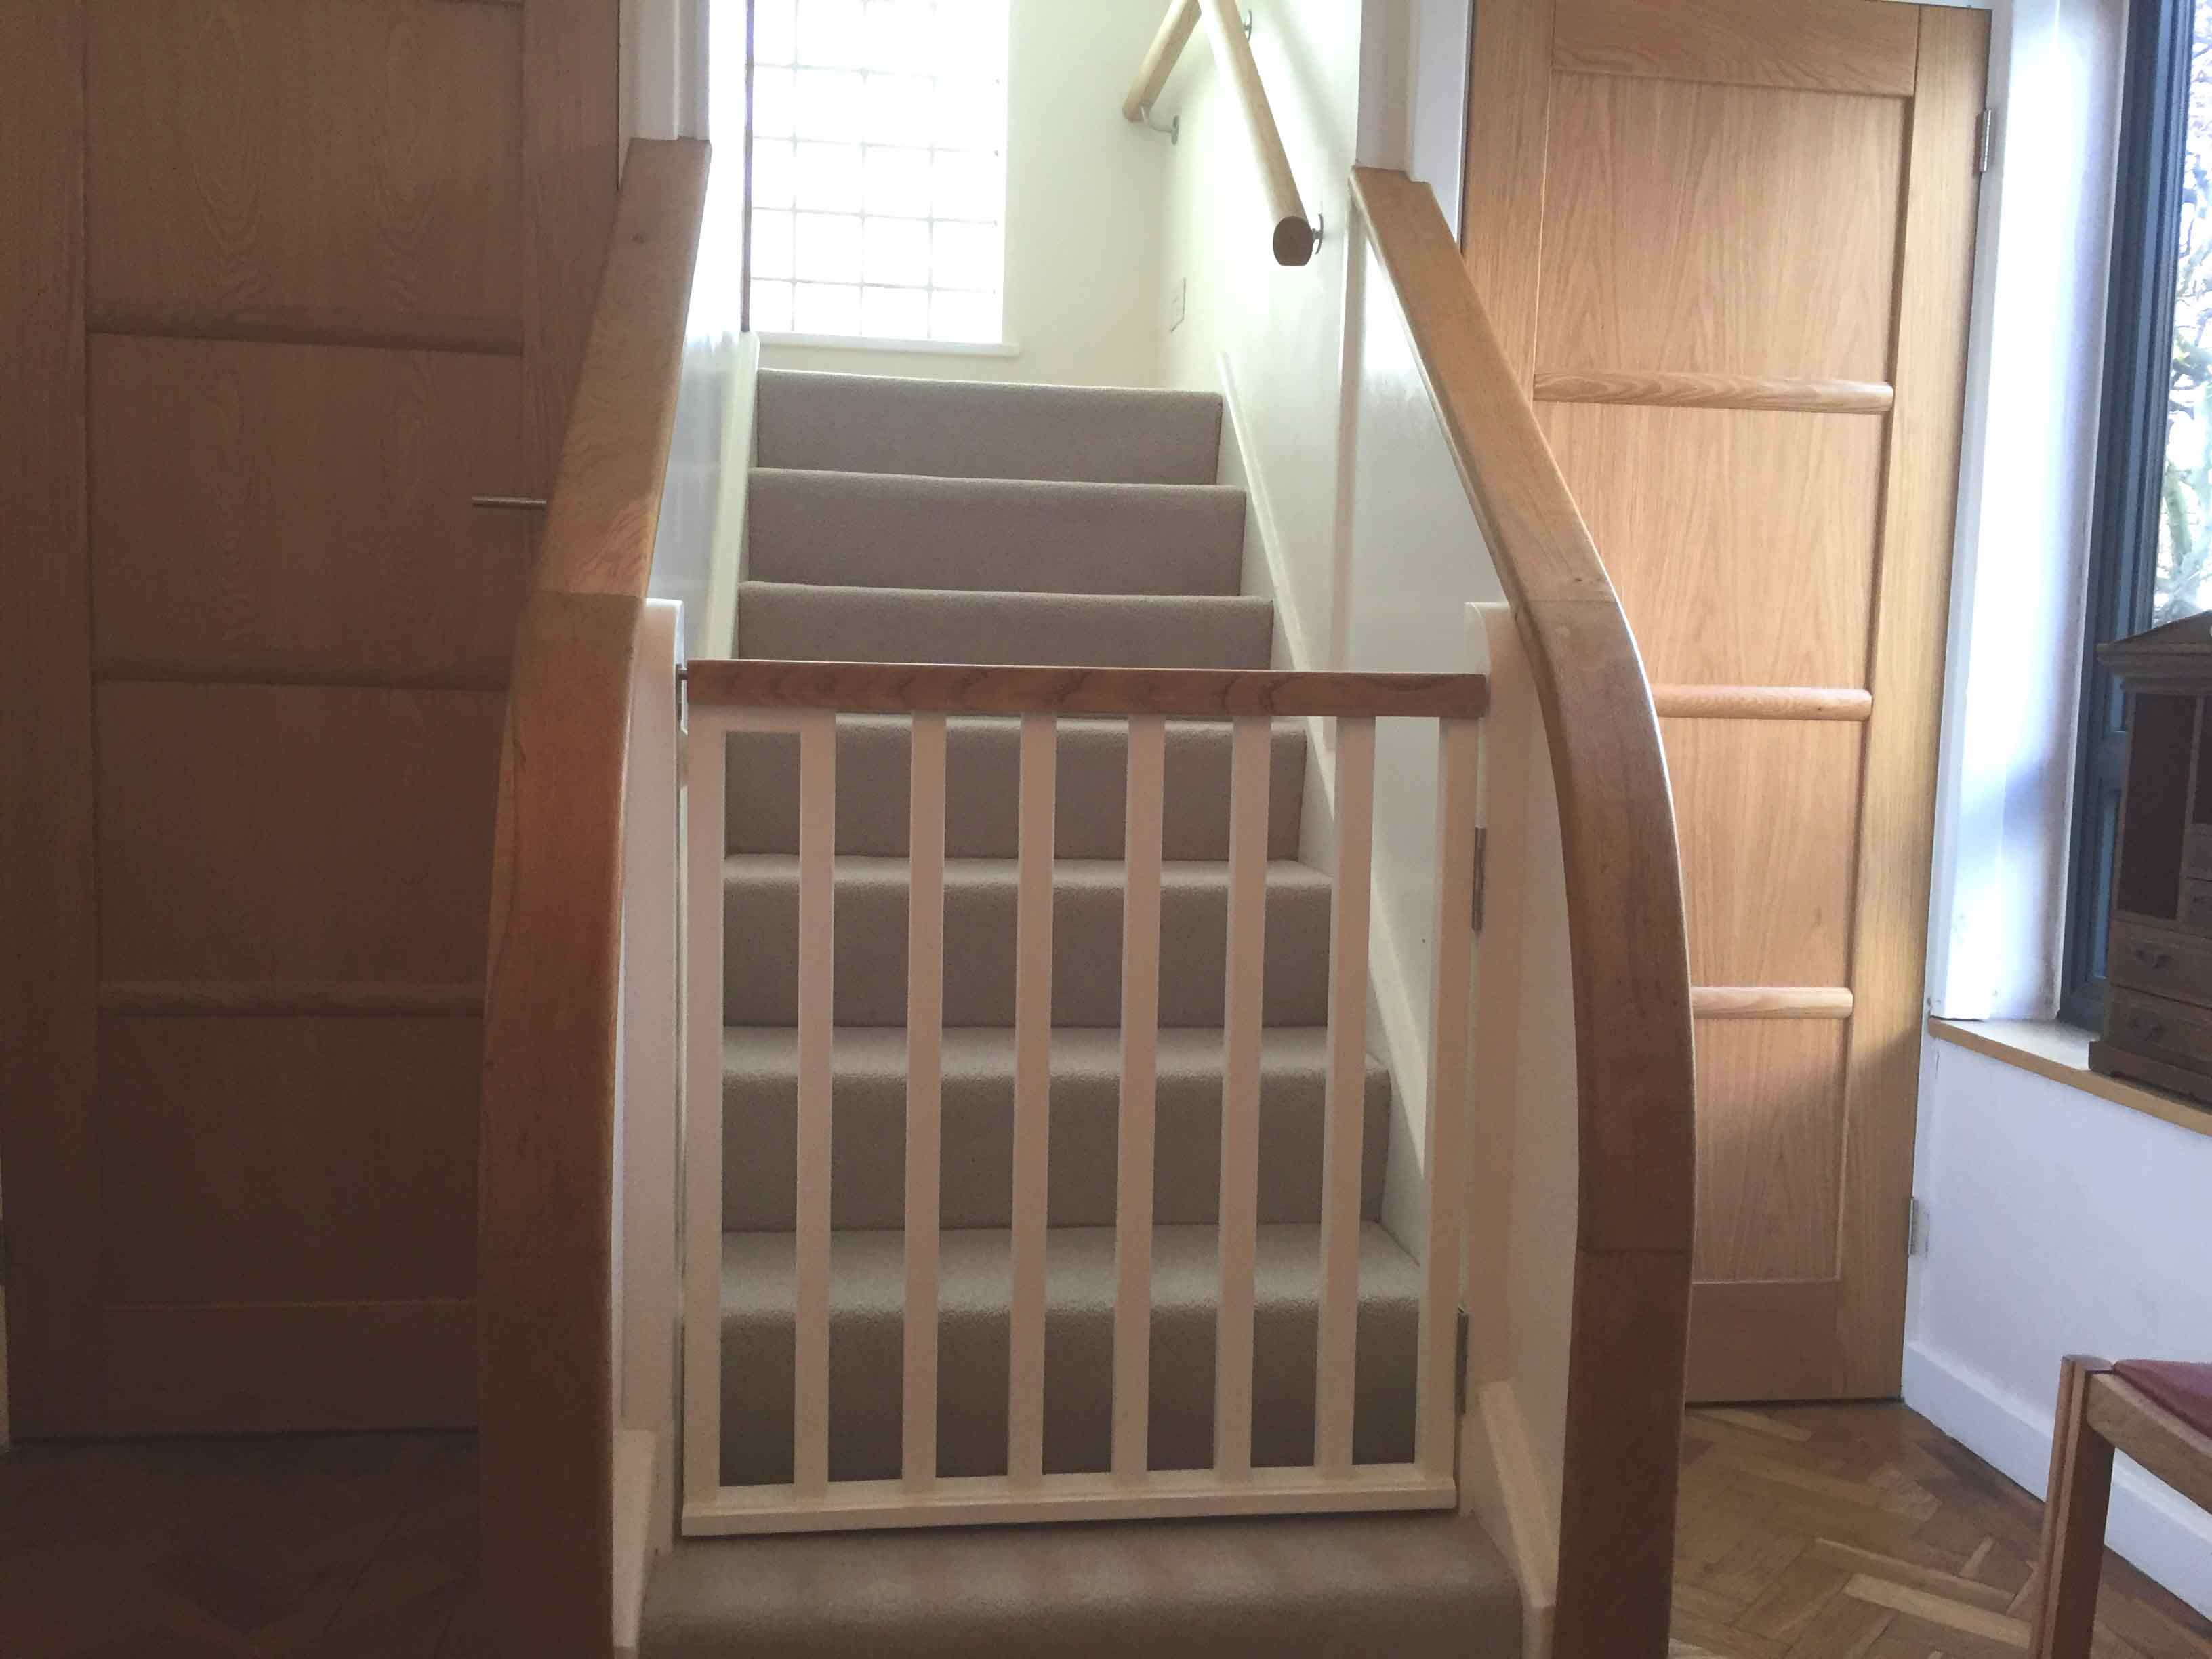 gates for stairs - stair gates – horkesley joinery ltd